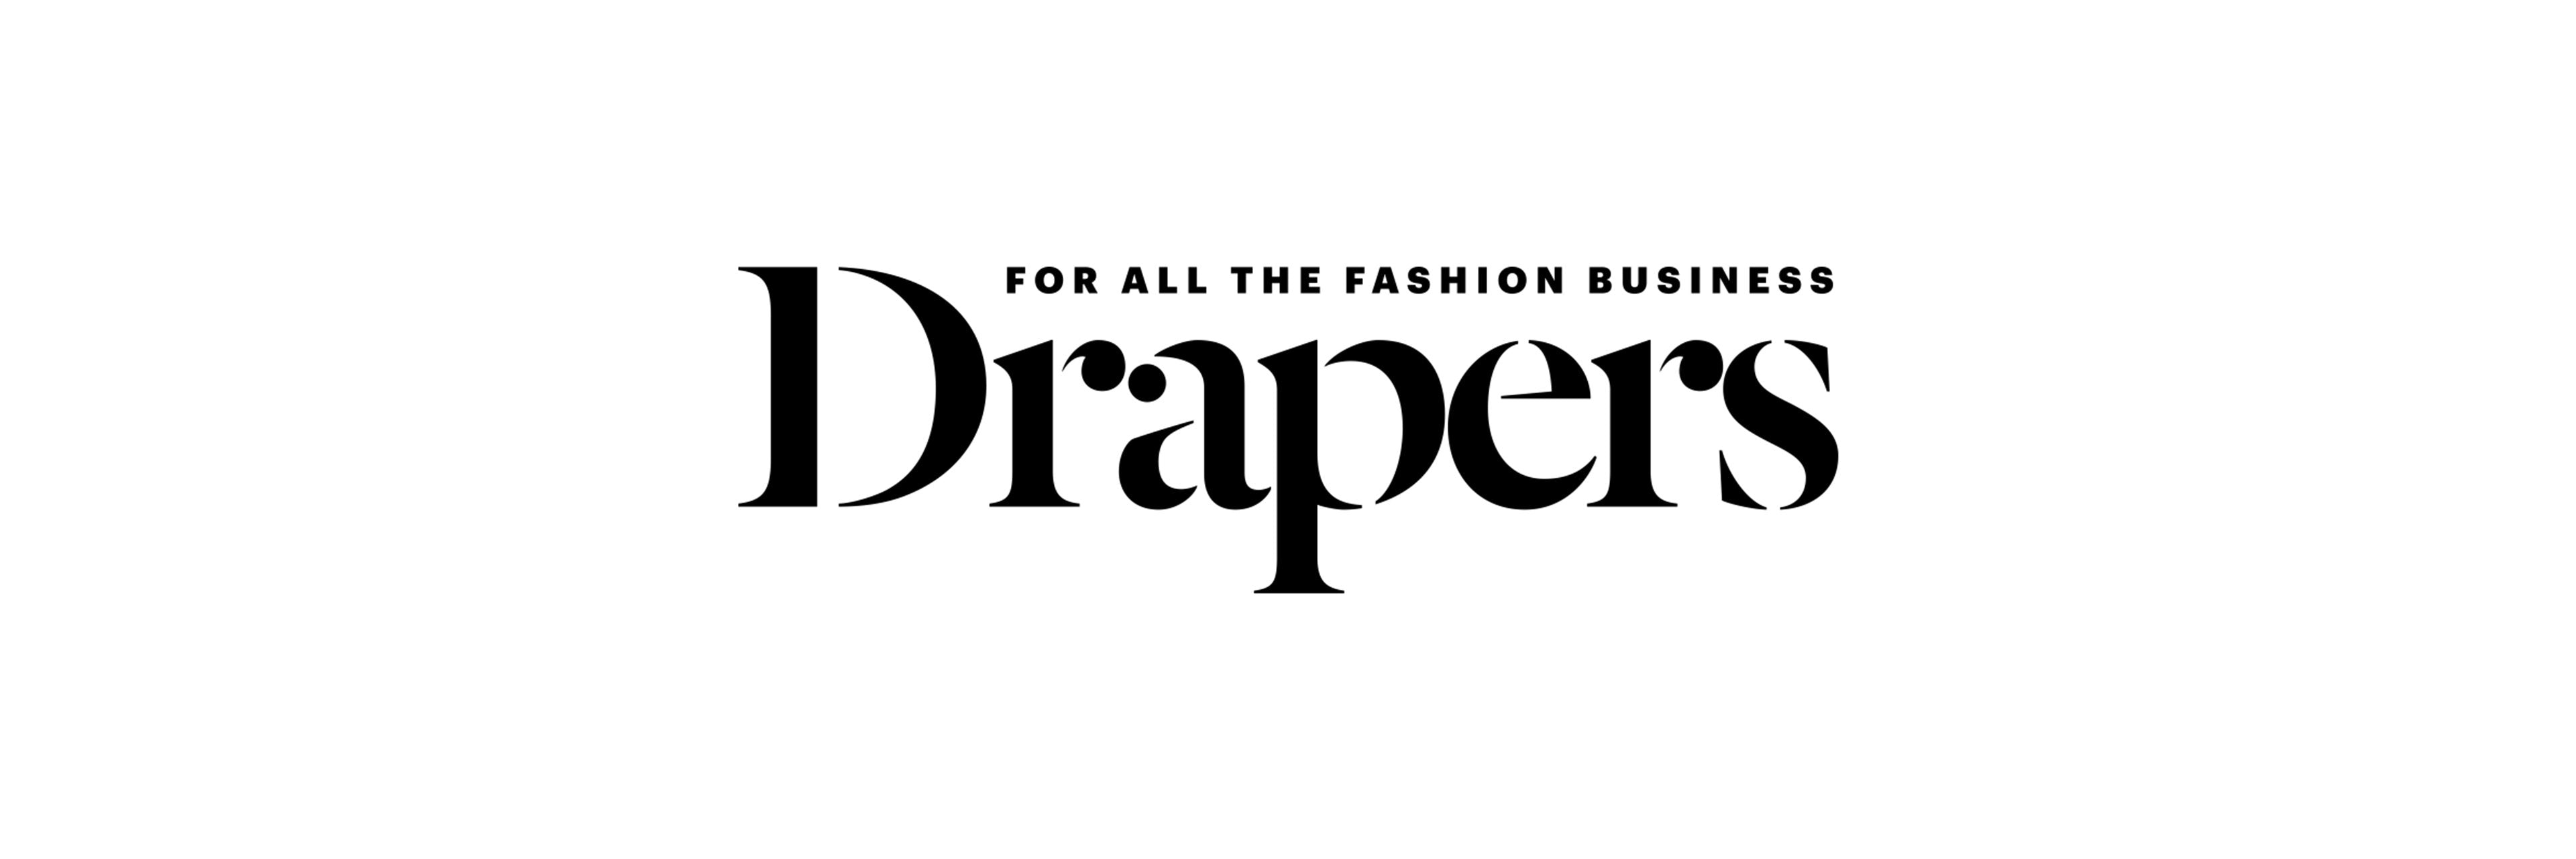 Holland Cooper Nominations in the Drapers Awards 2018